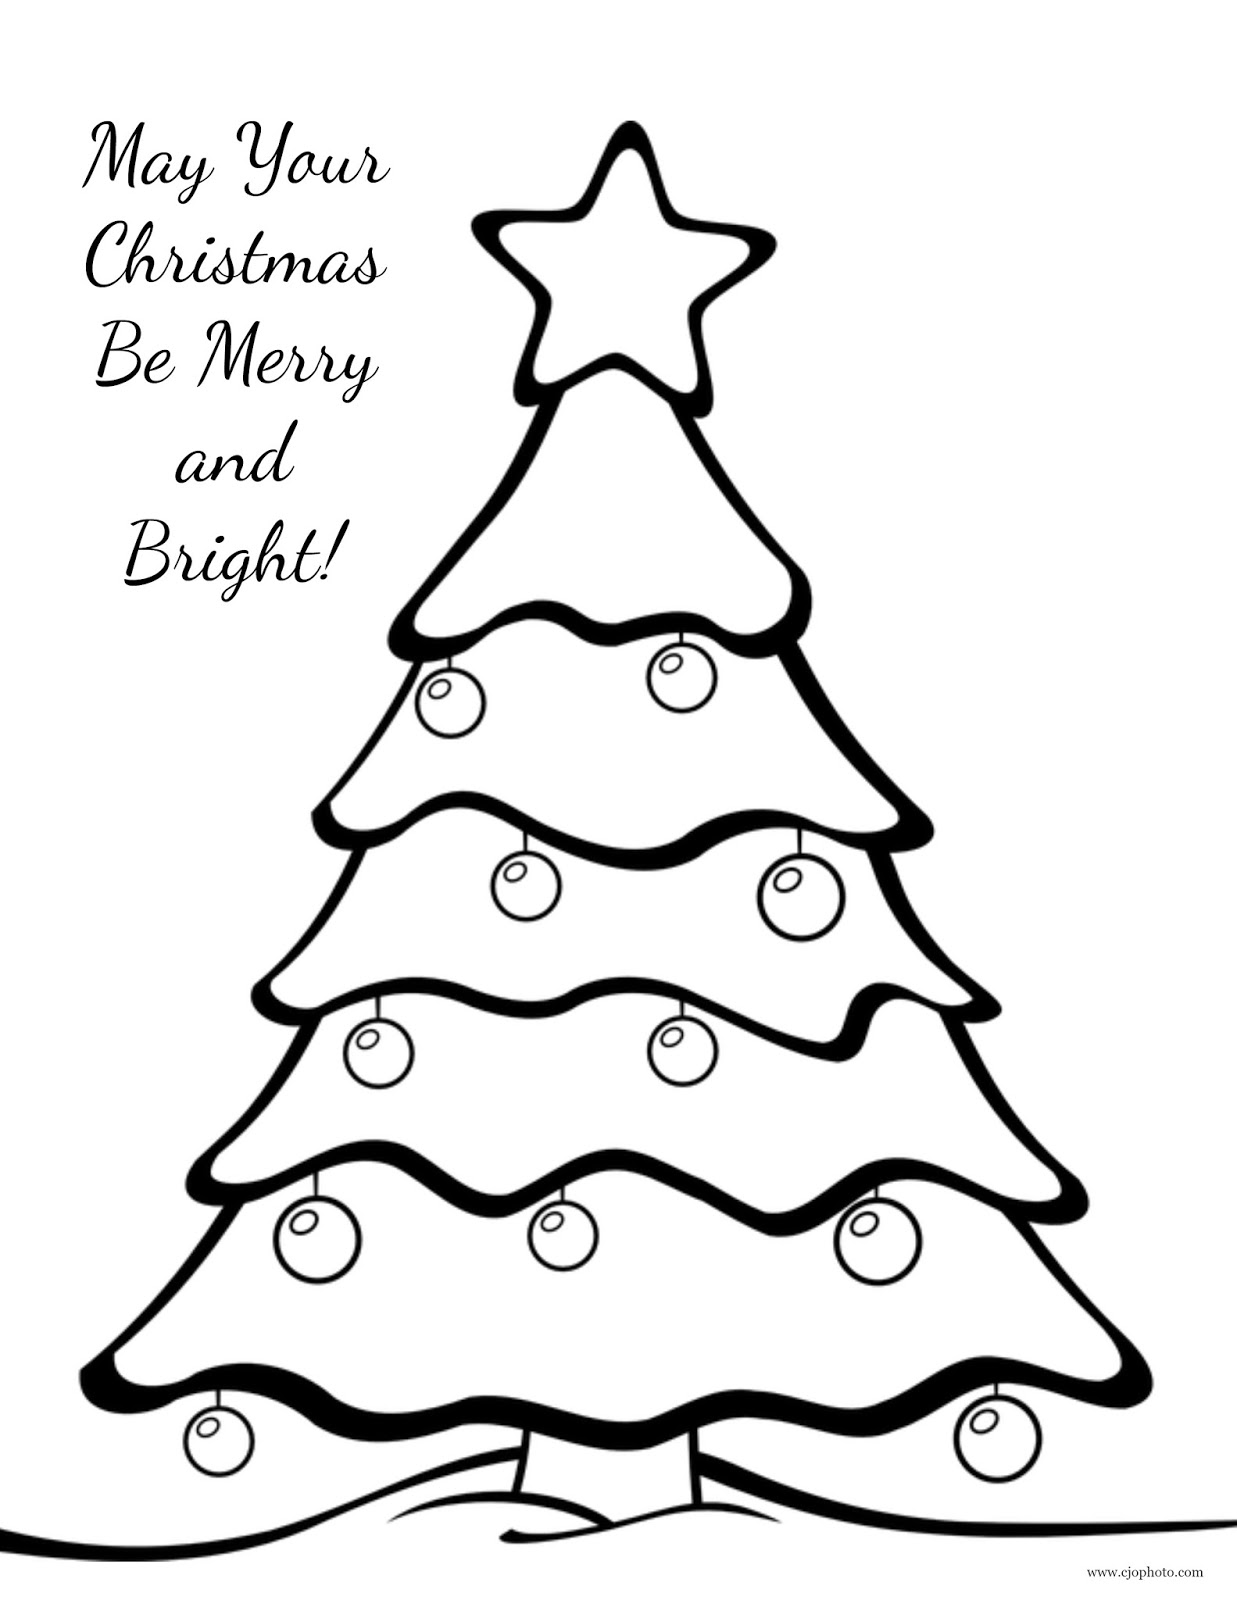 xmas tree colouring pages christmas tree coloring page wallpapers9 pages tree colouring xmas